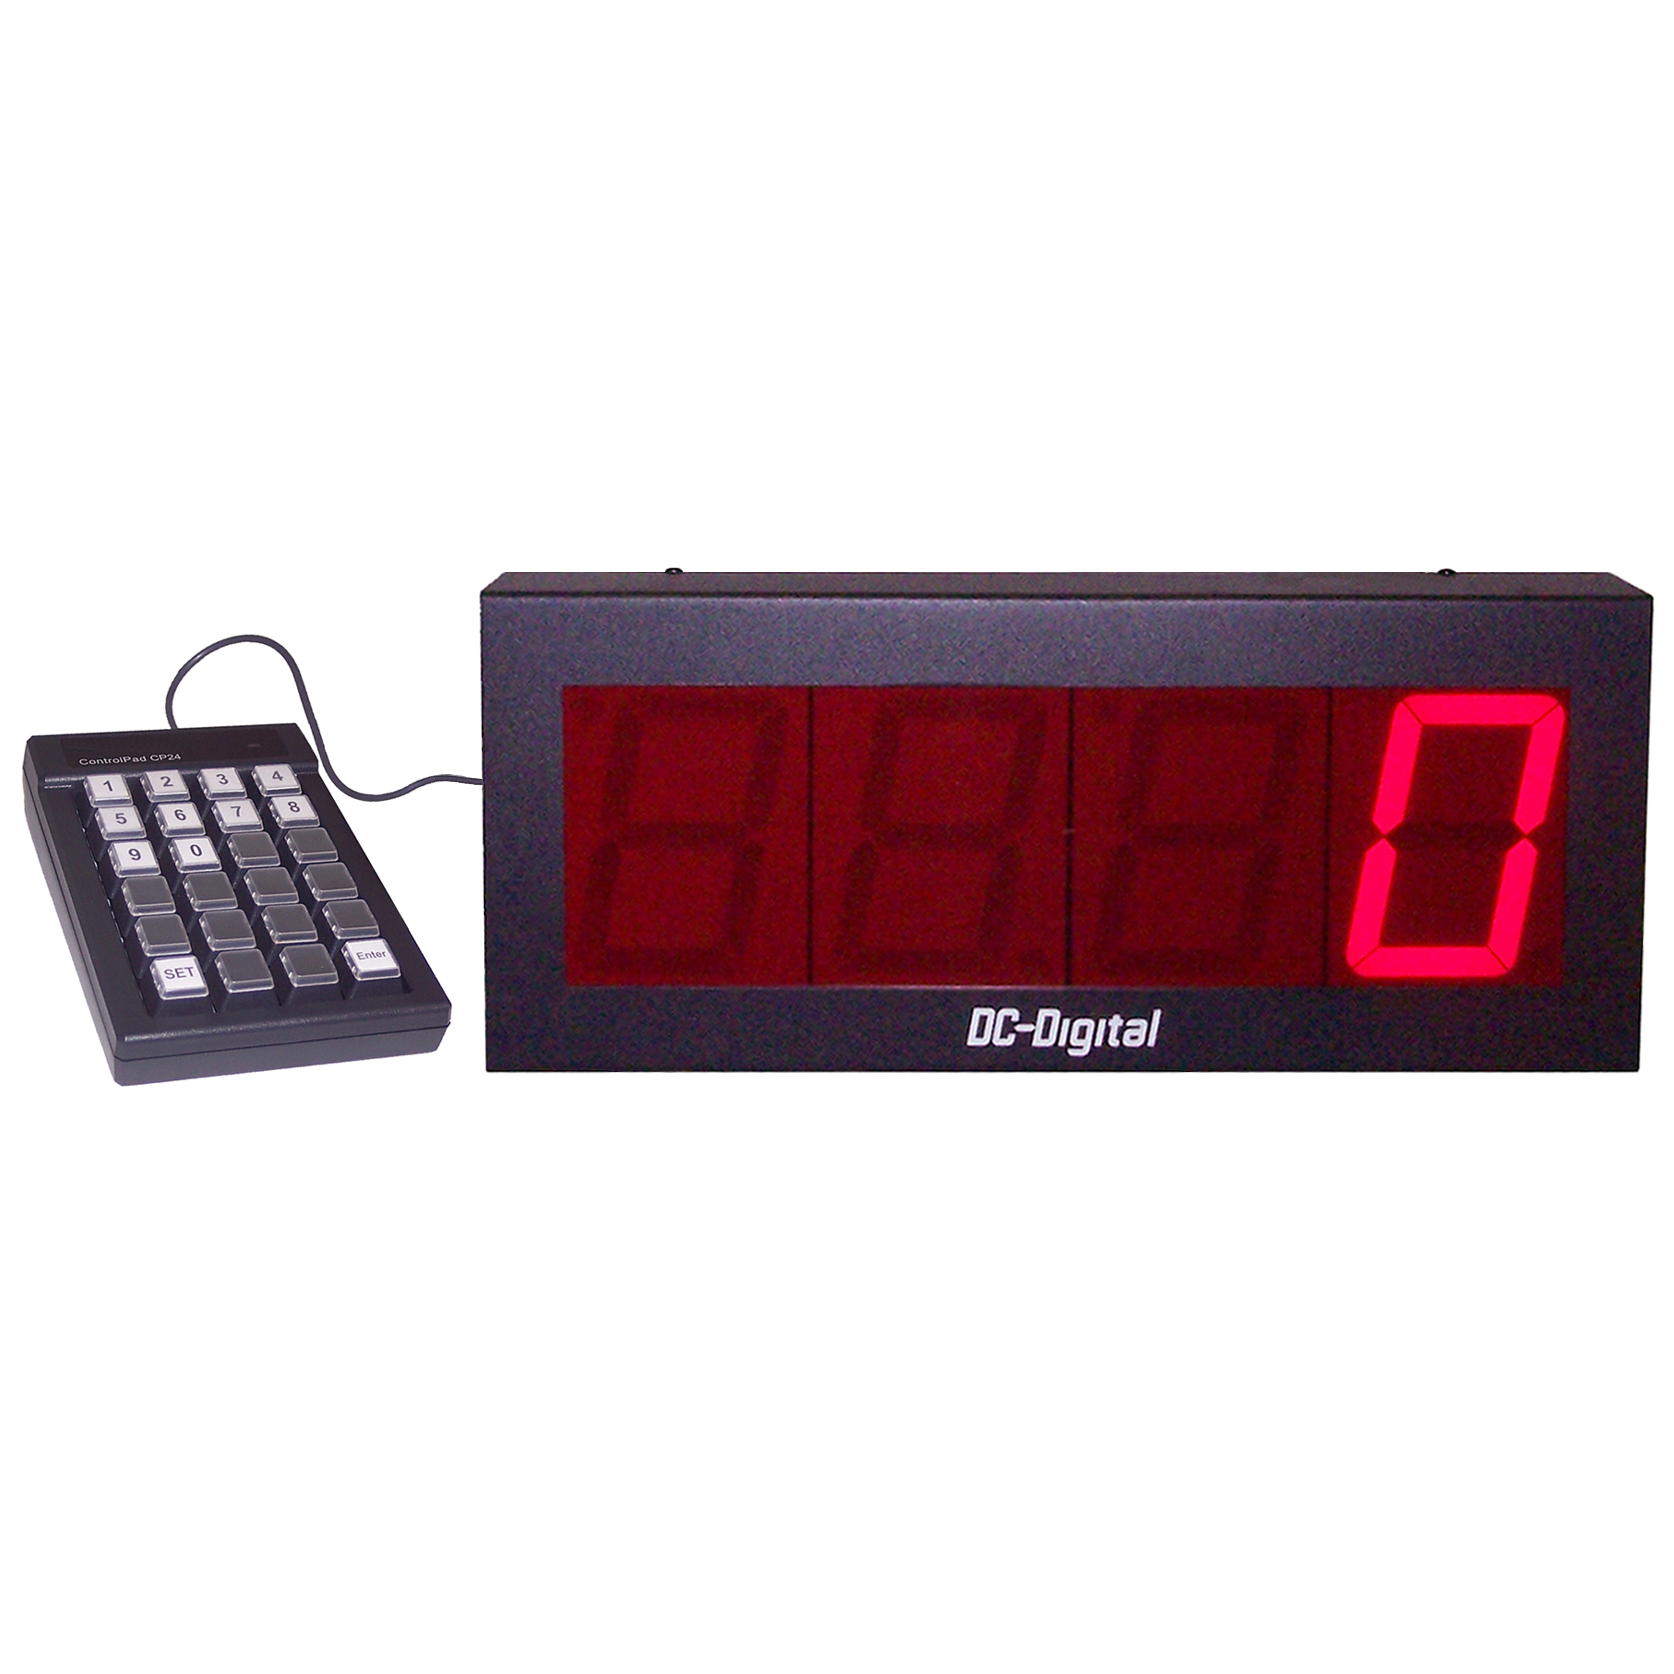 DC-40-Static-Key-Keypad-Controlled-Static-Number-Display-4-inch-Digits